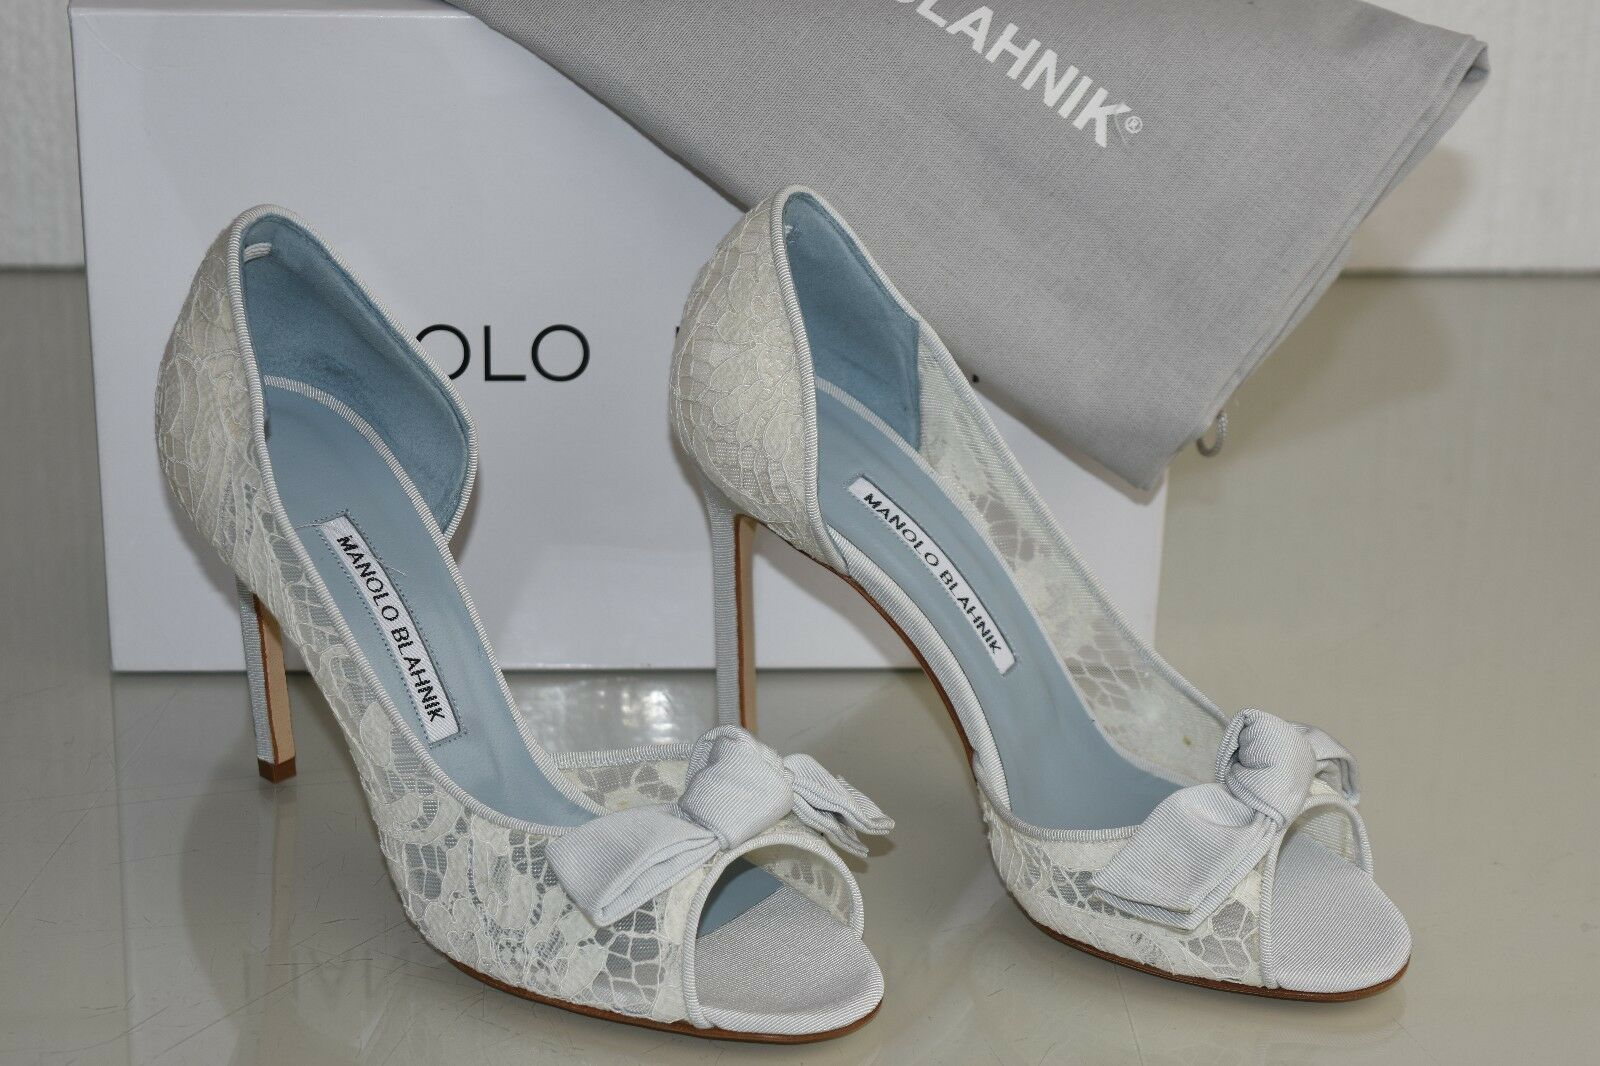 NEW MANOLO BLAHNIK SILVANU Lace d'Orsay shoes Ivory bluee Wedding 36 37 38 39 40